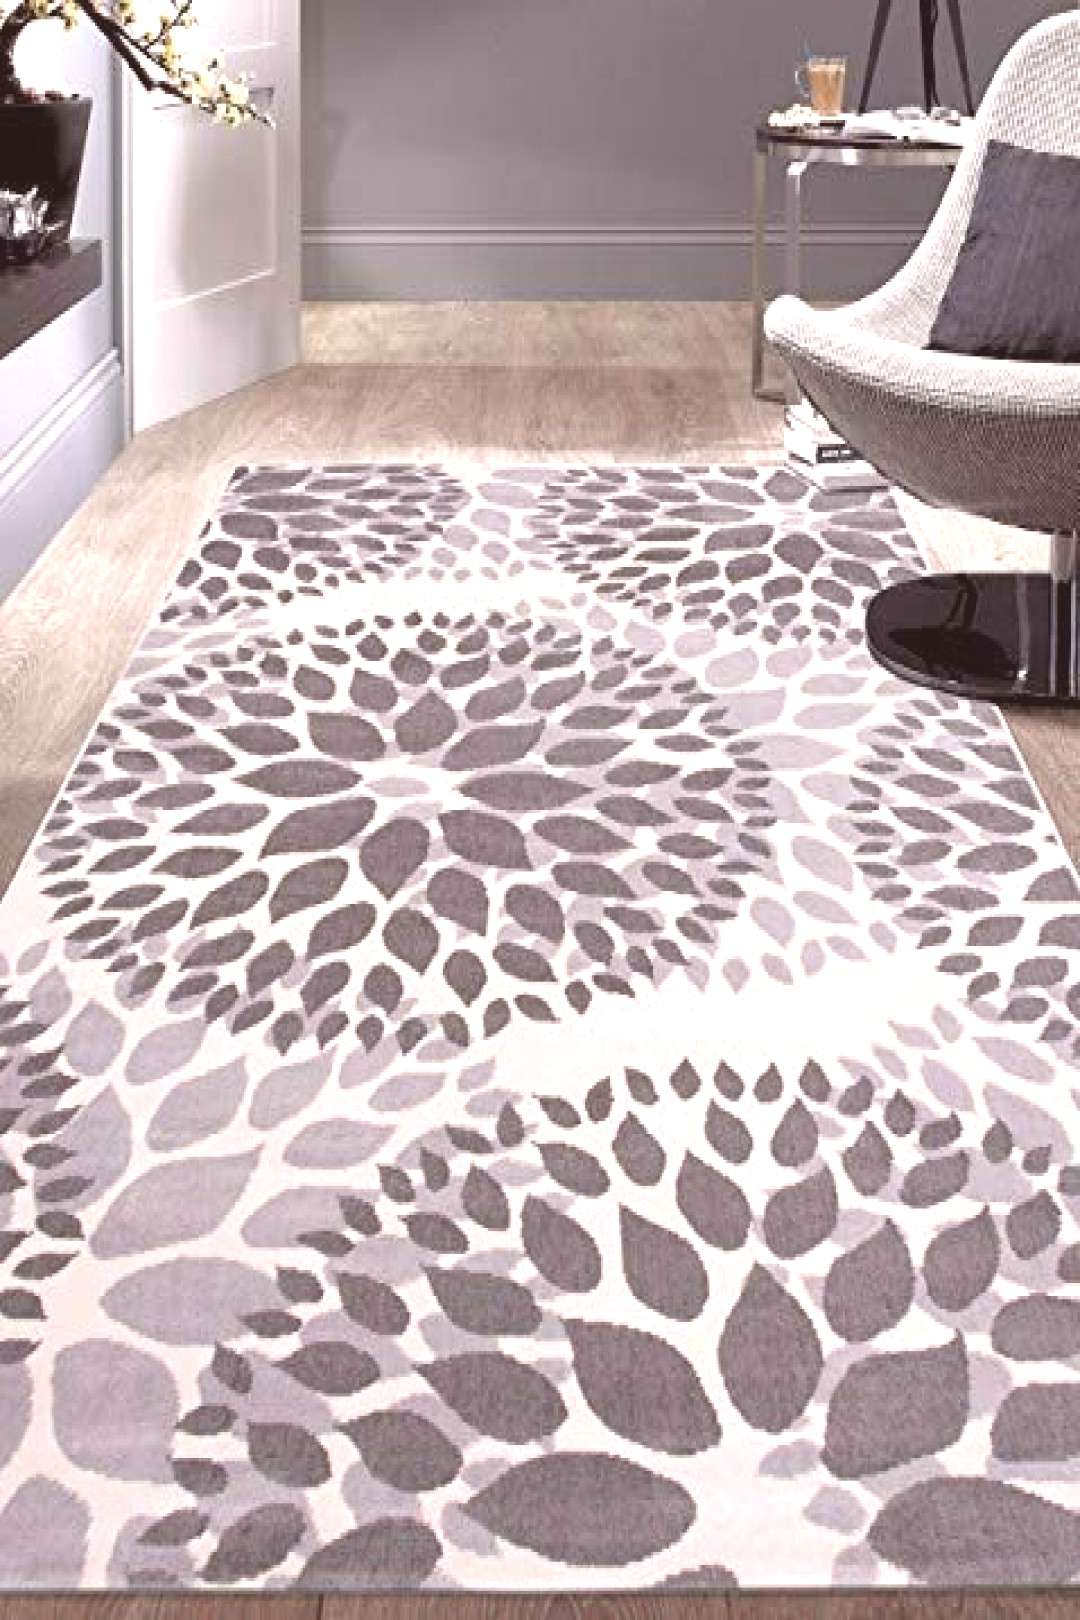 New Modern Floral Circles Design Area Rugs 10' x 14' Gray online - Thechicfashionideas  Chic Modern